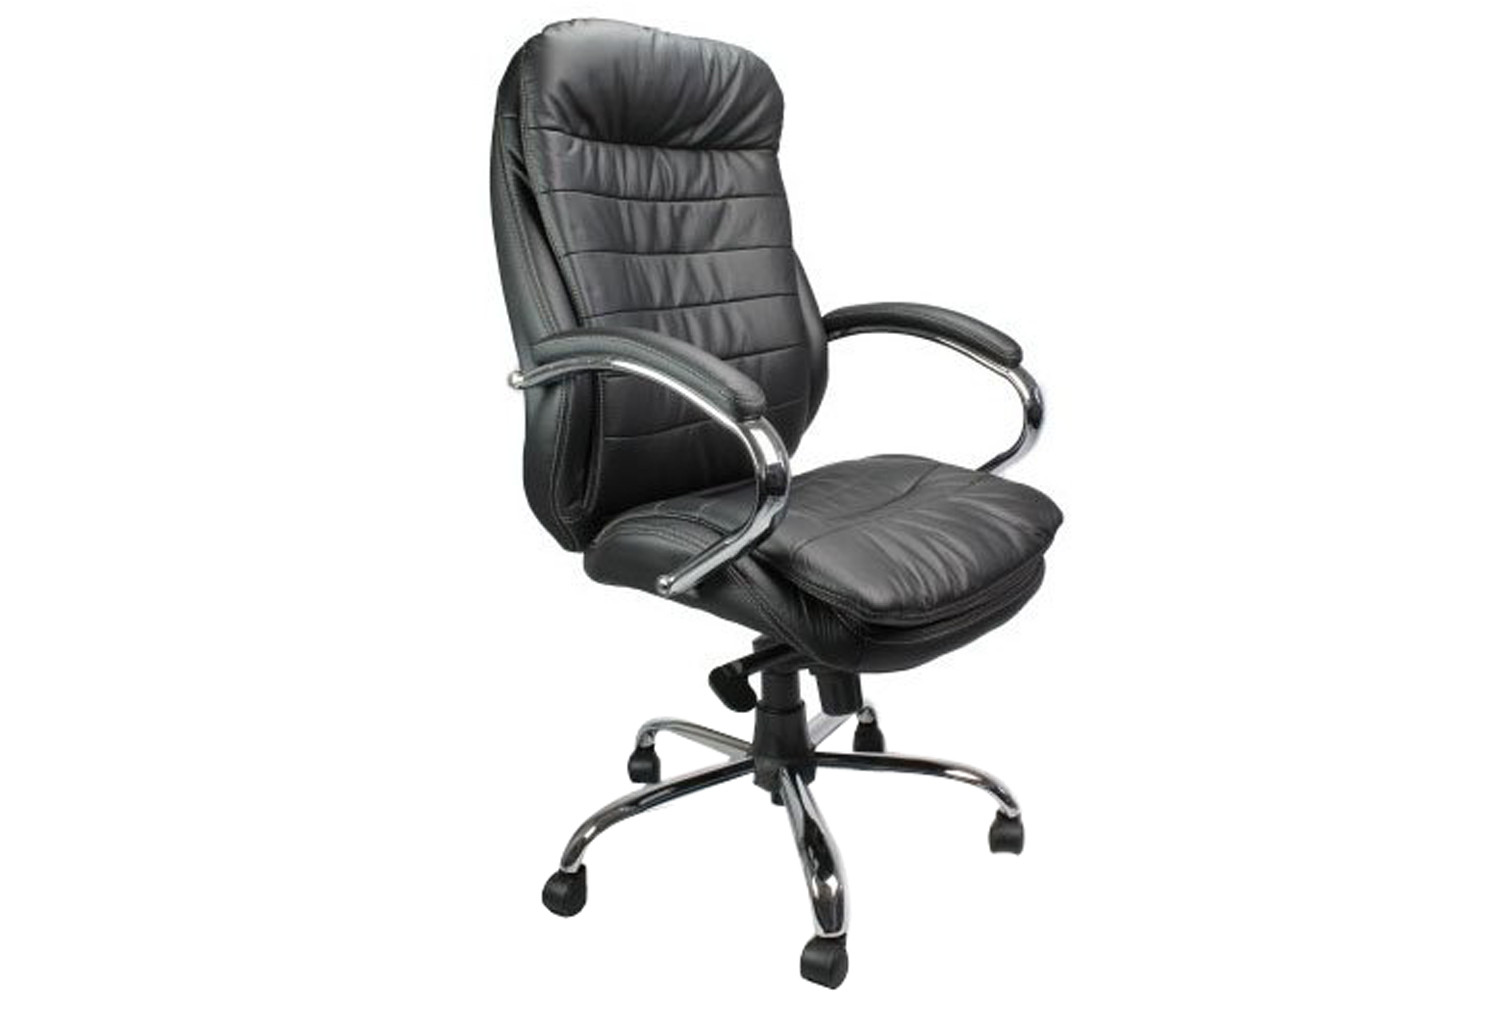 Nairn black leather faced executive chair